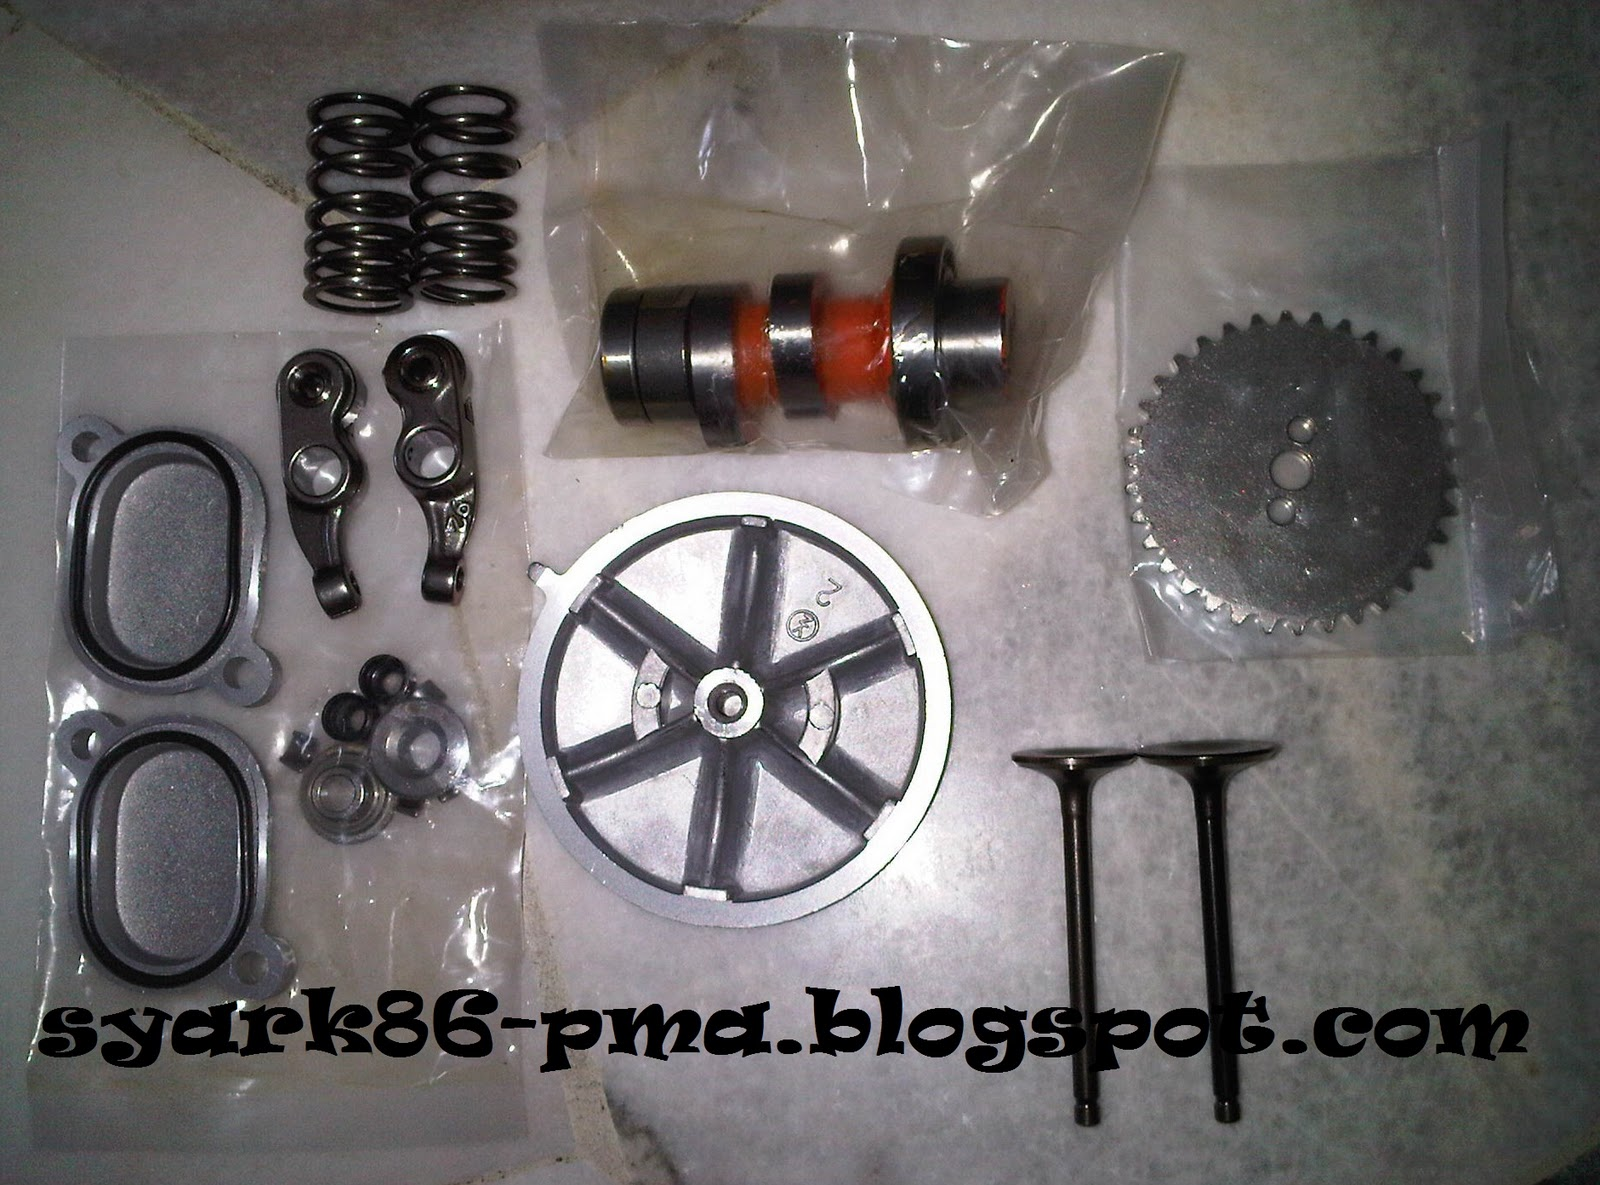 Images of Xrm Motor Parts And Accessories